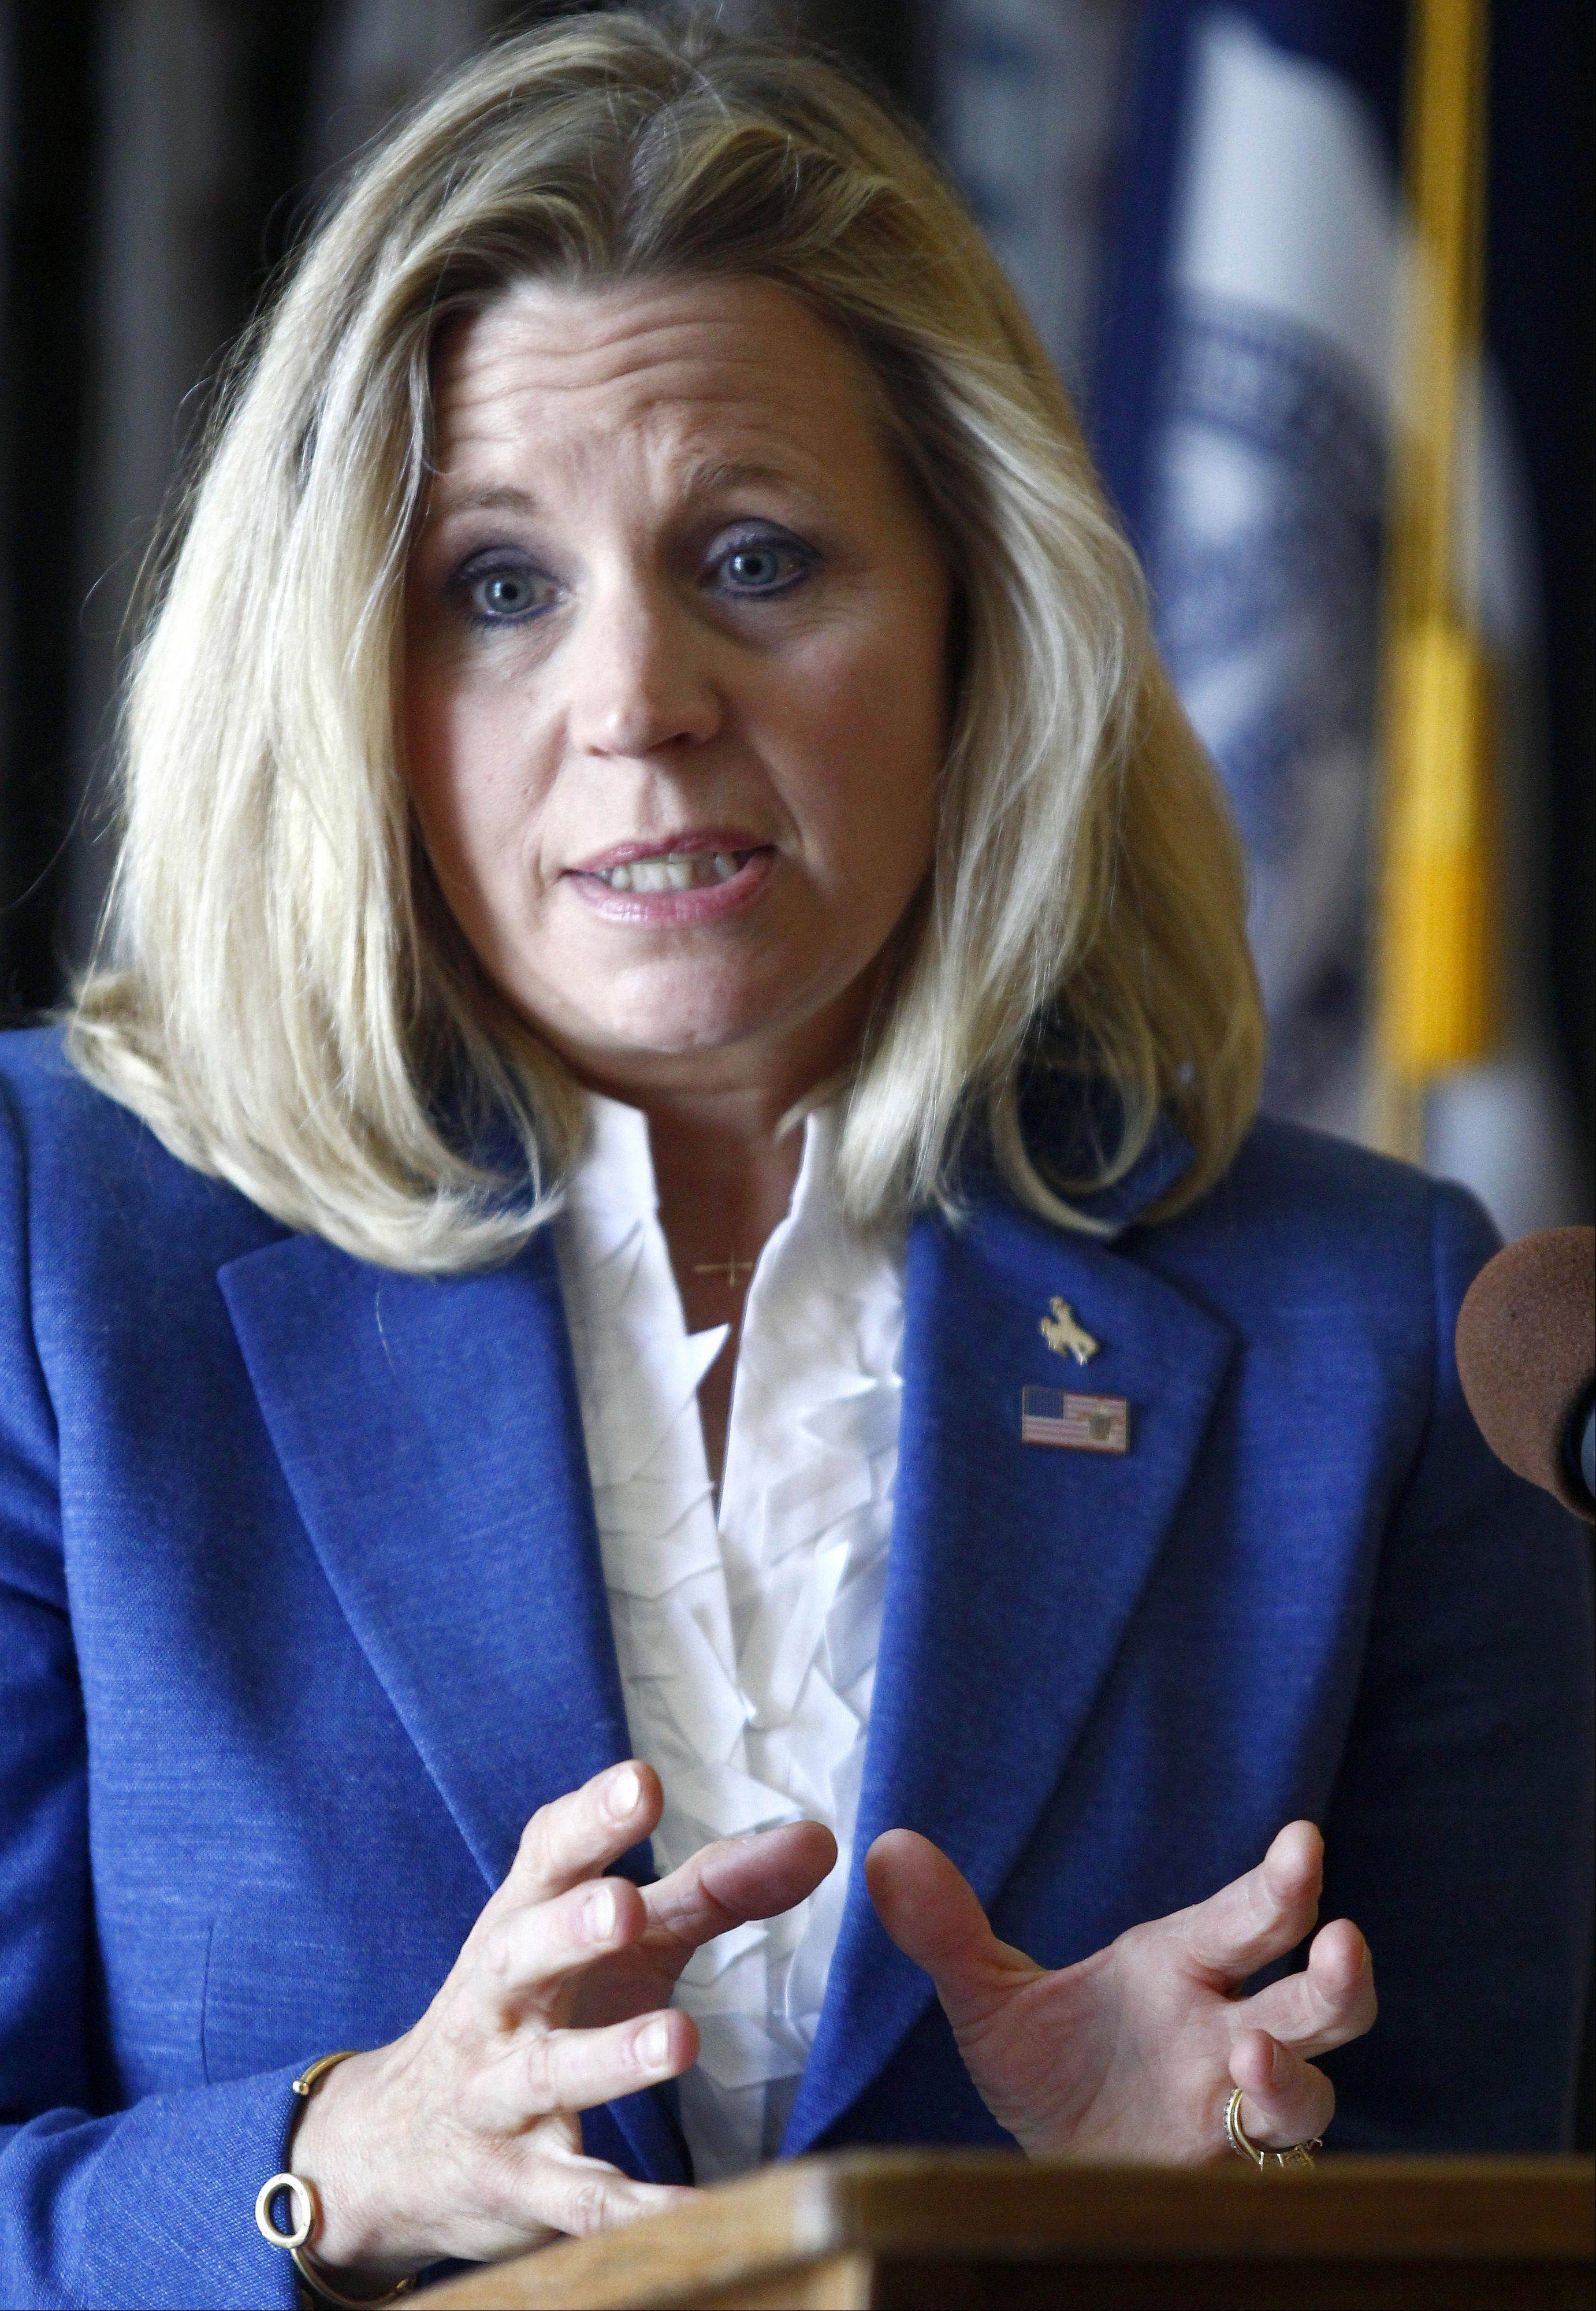 Liz Cheney, daughter of former Vice President Dick Cheney, is quitting the Wyoming's Republican Senate primary, abandoning her effort to unseat incumbent Sen. Mike Enzi.